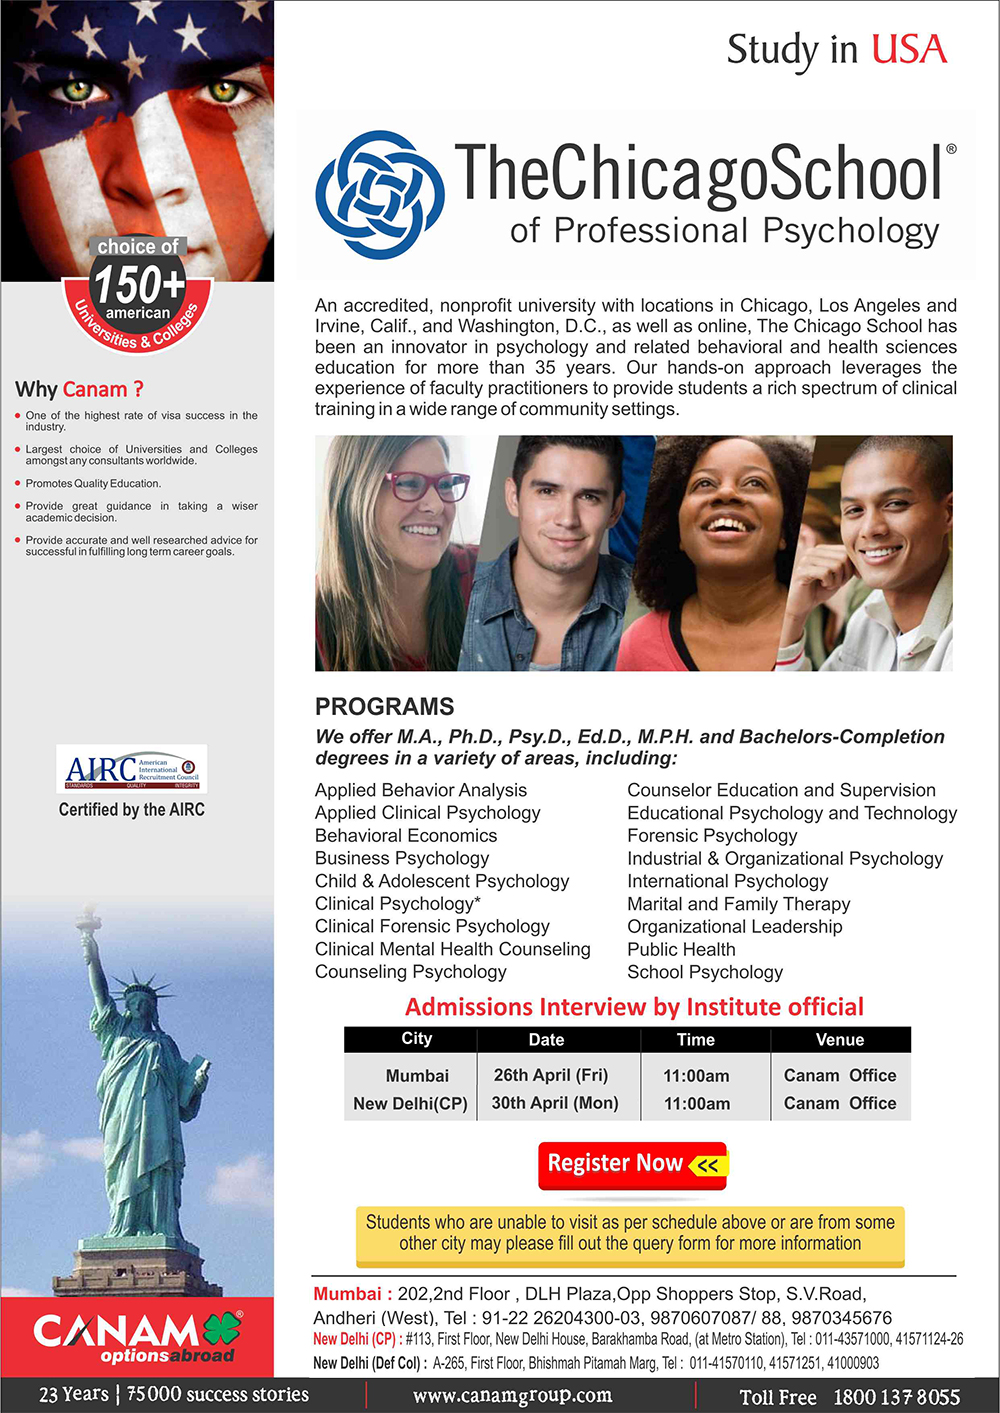 study-in-the-chicago-school-of-professional-psychology